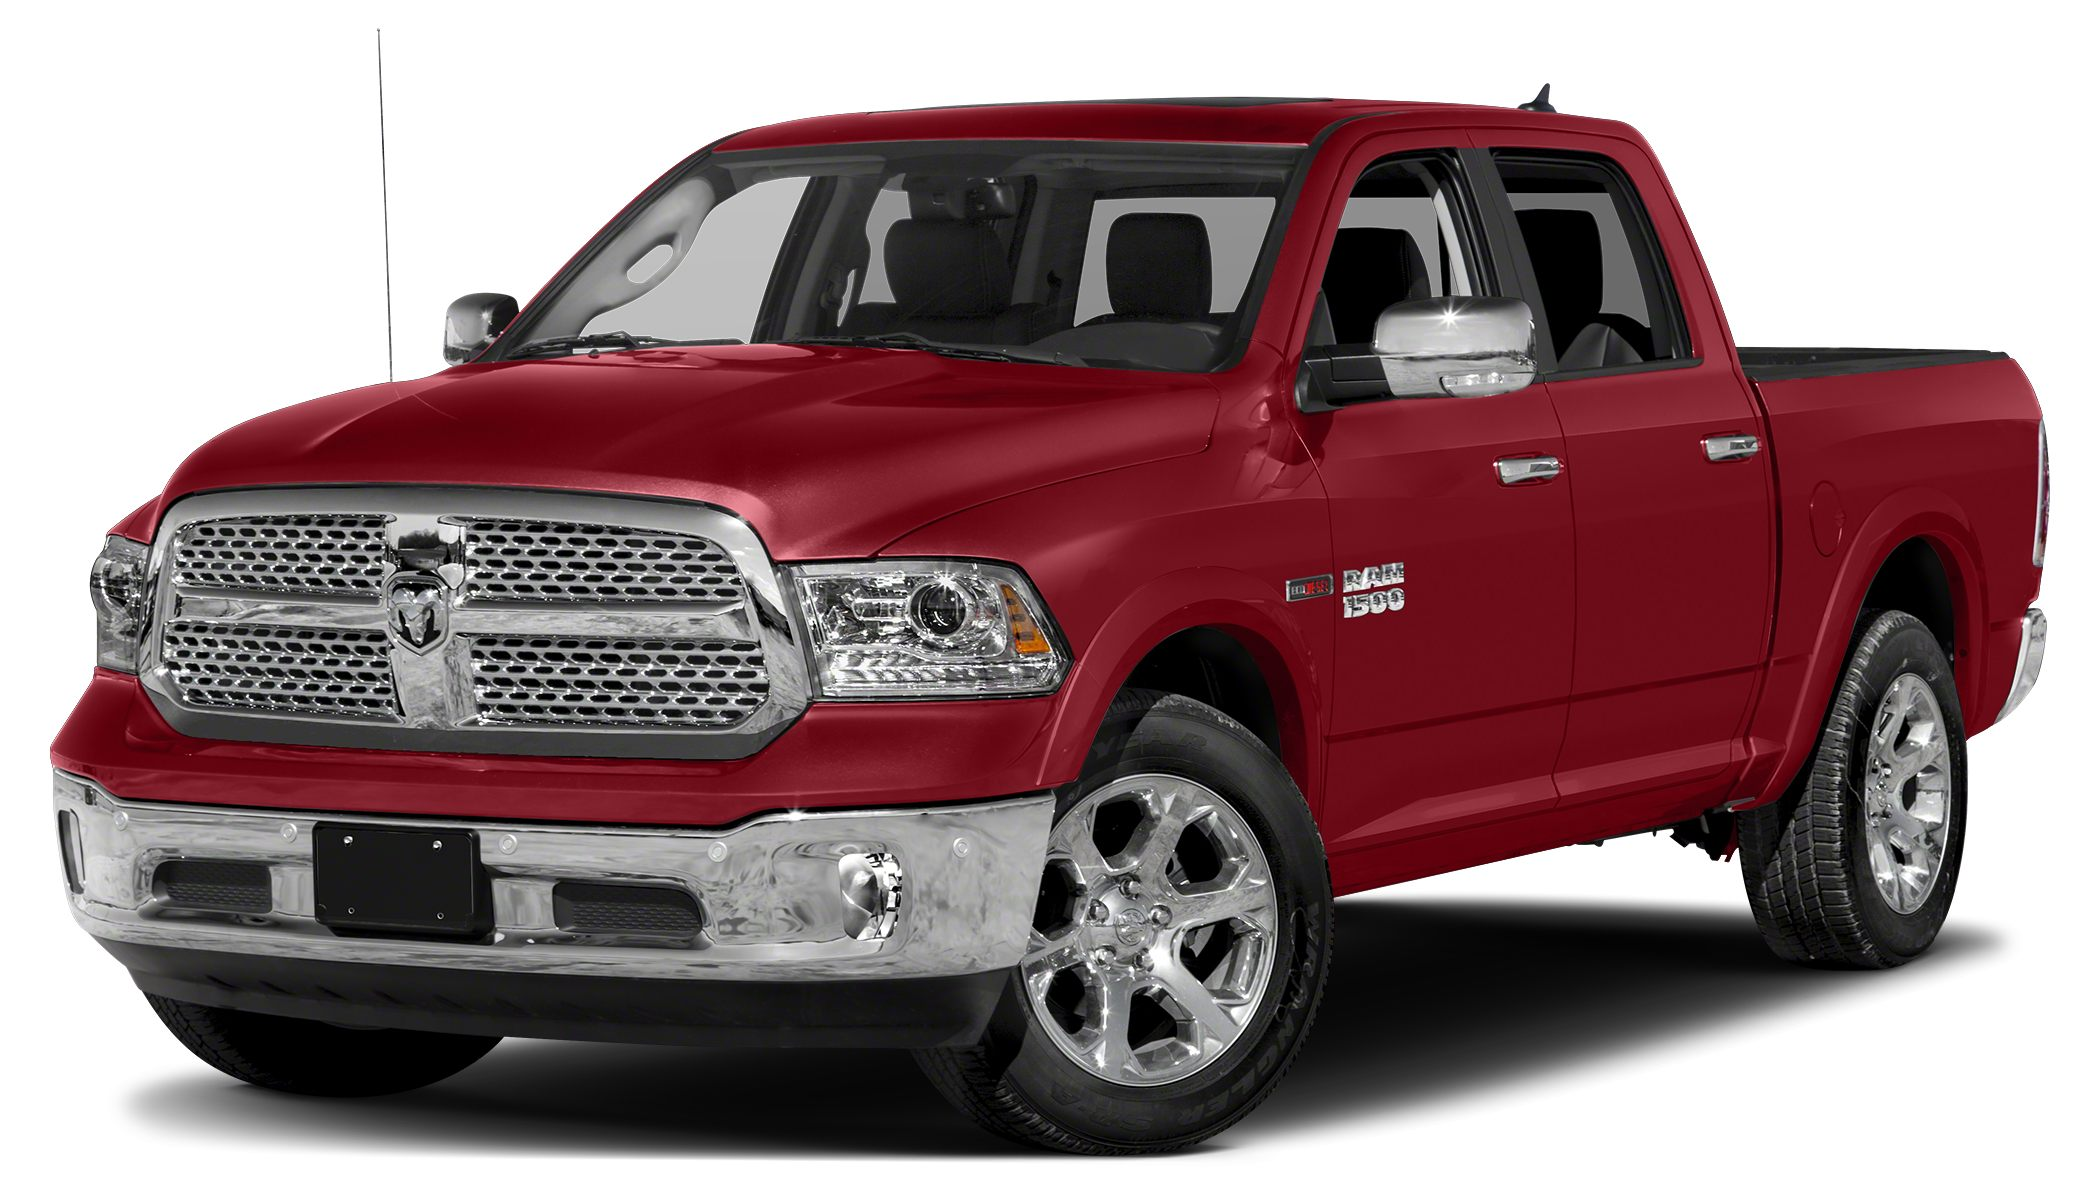 2015 RAM 1500 Laramie Lake Keowee Chrysler Dodge Jeep has a wide selection of exceptional pre-owne